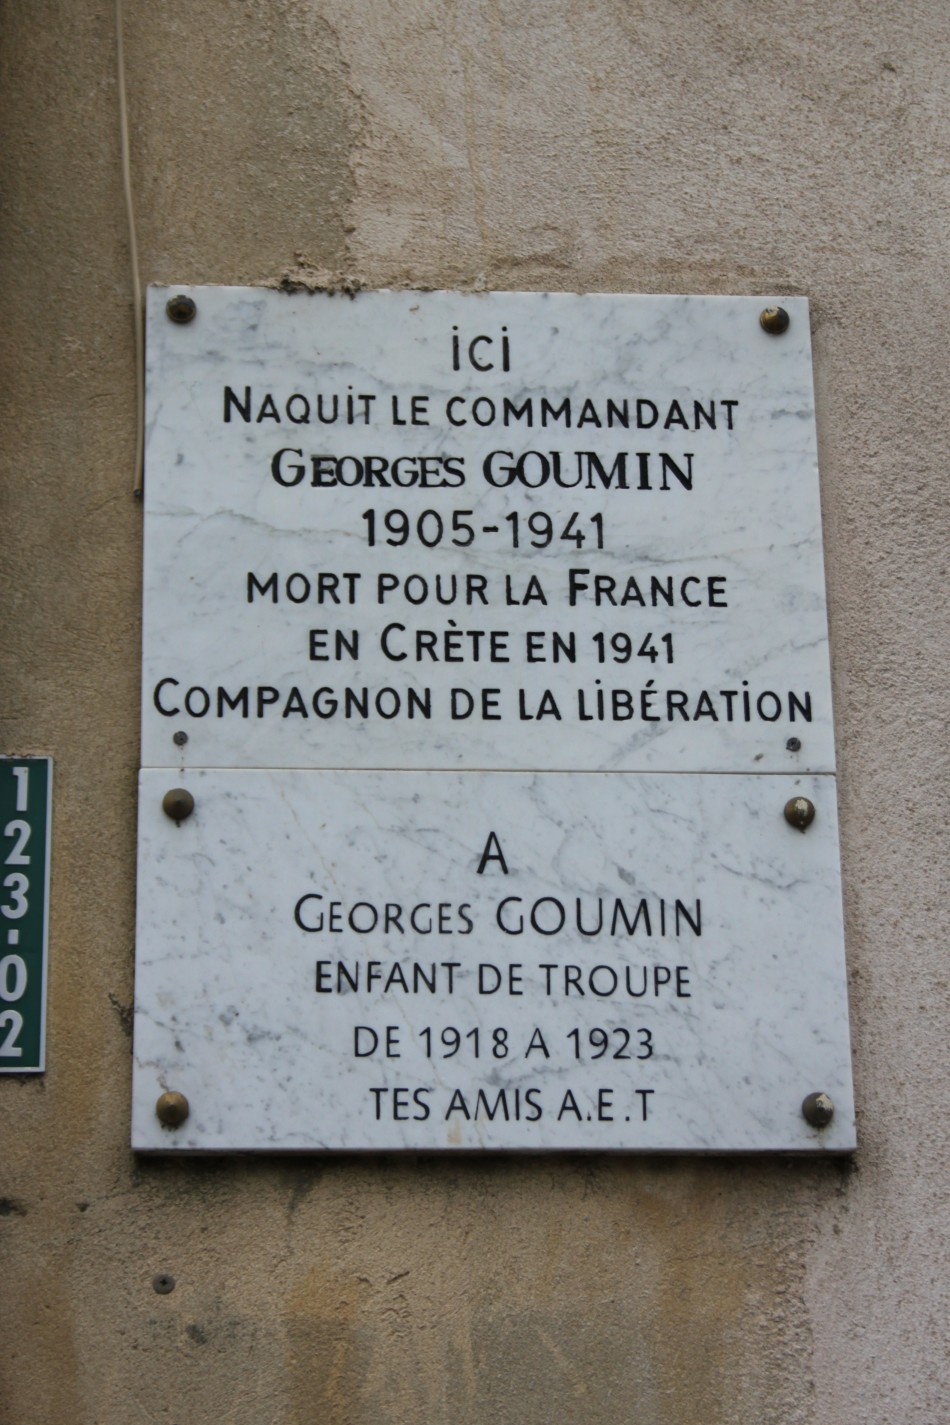 Plaque Maison natale Commandant Georges Goumin Orange Vaucluse (84)